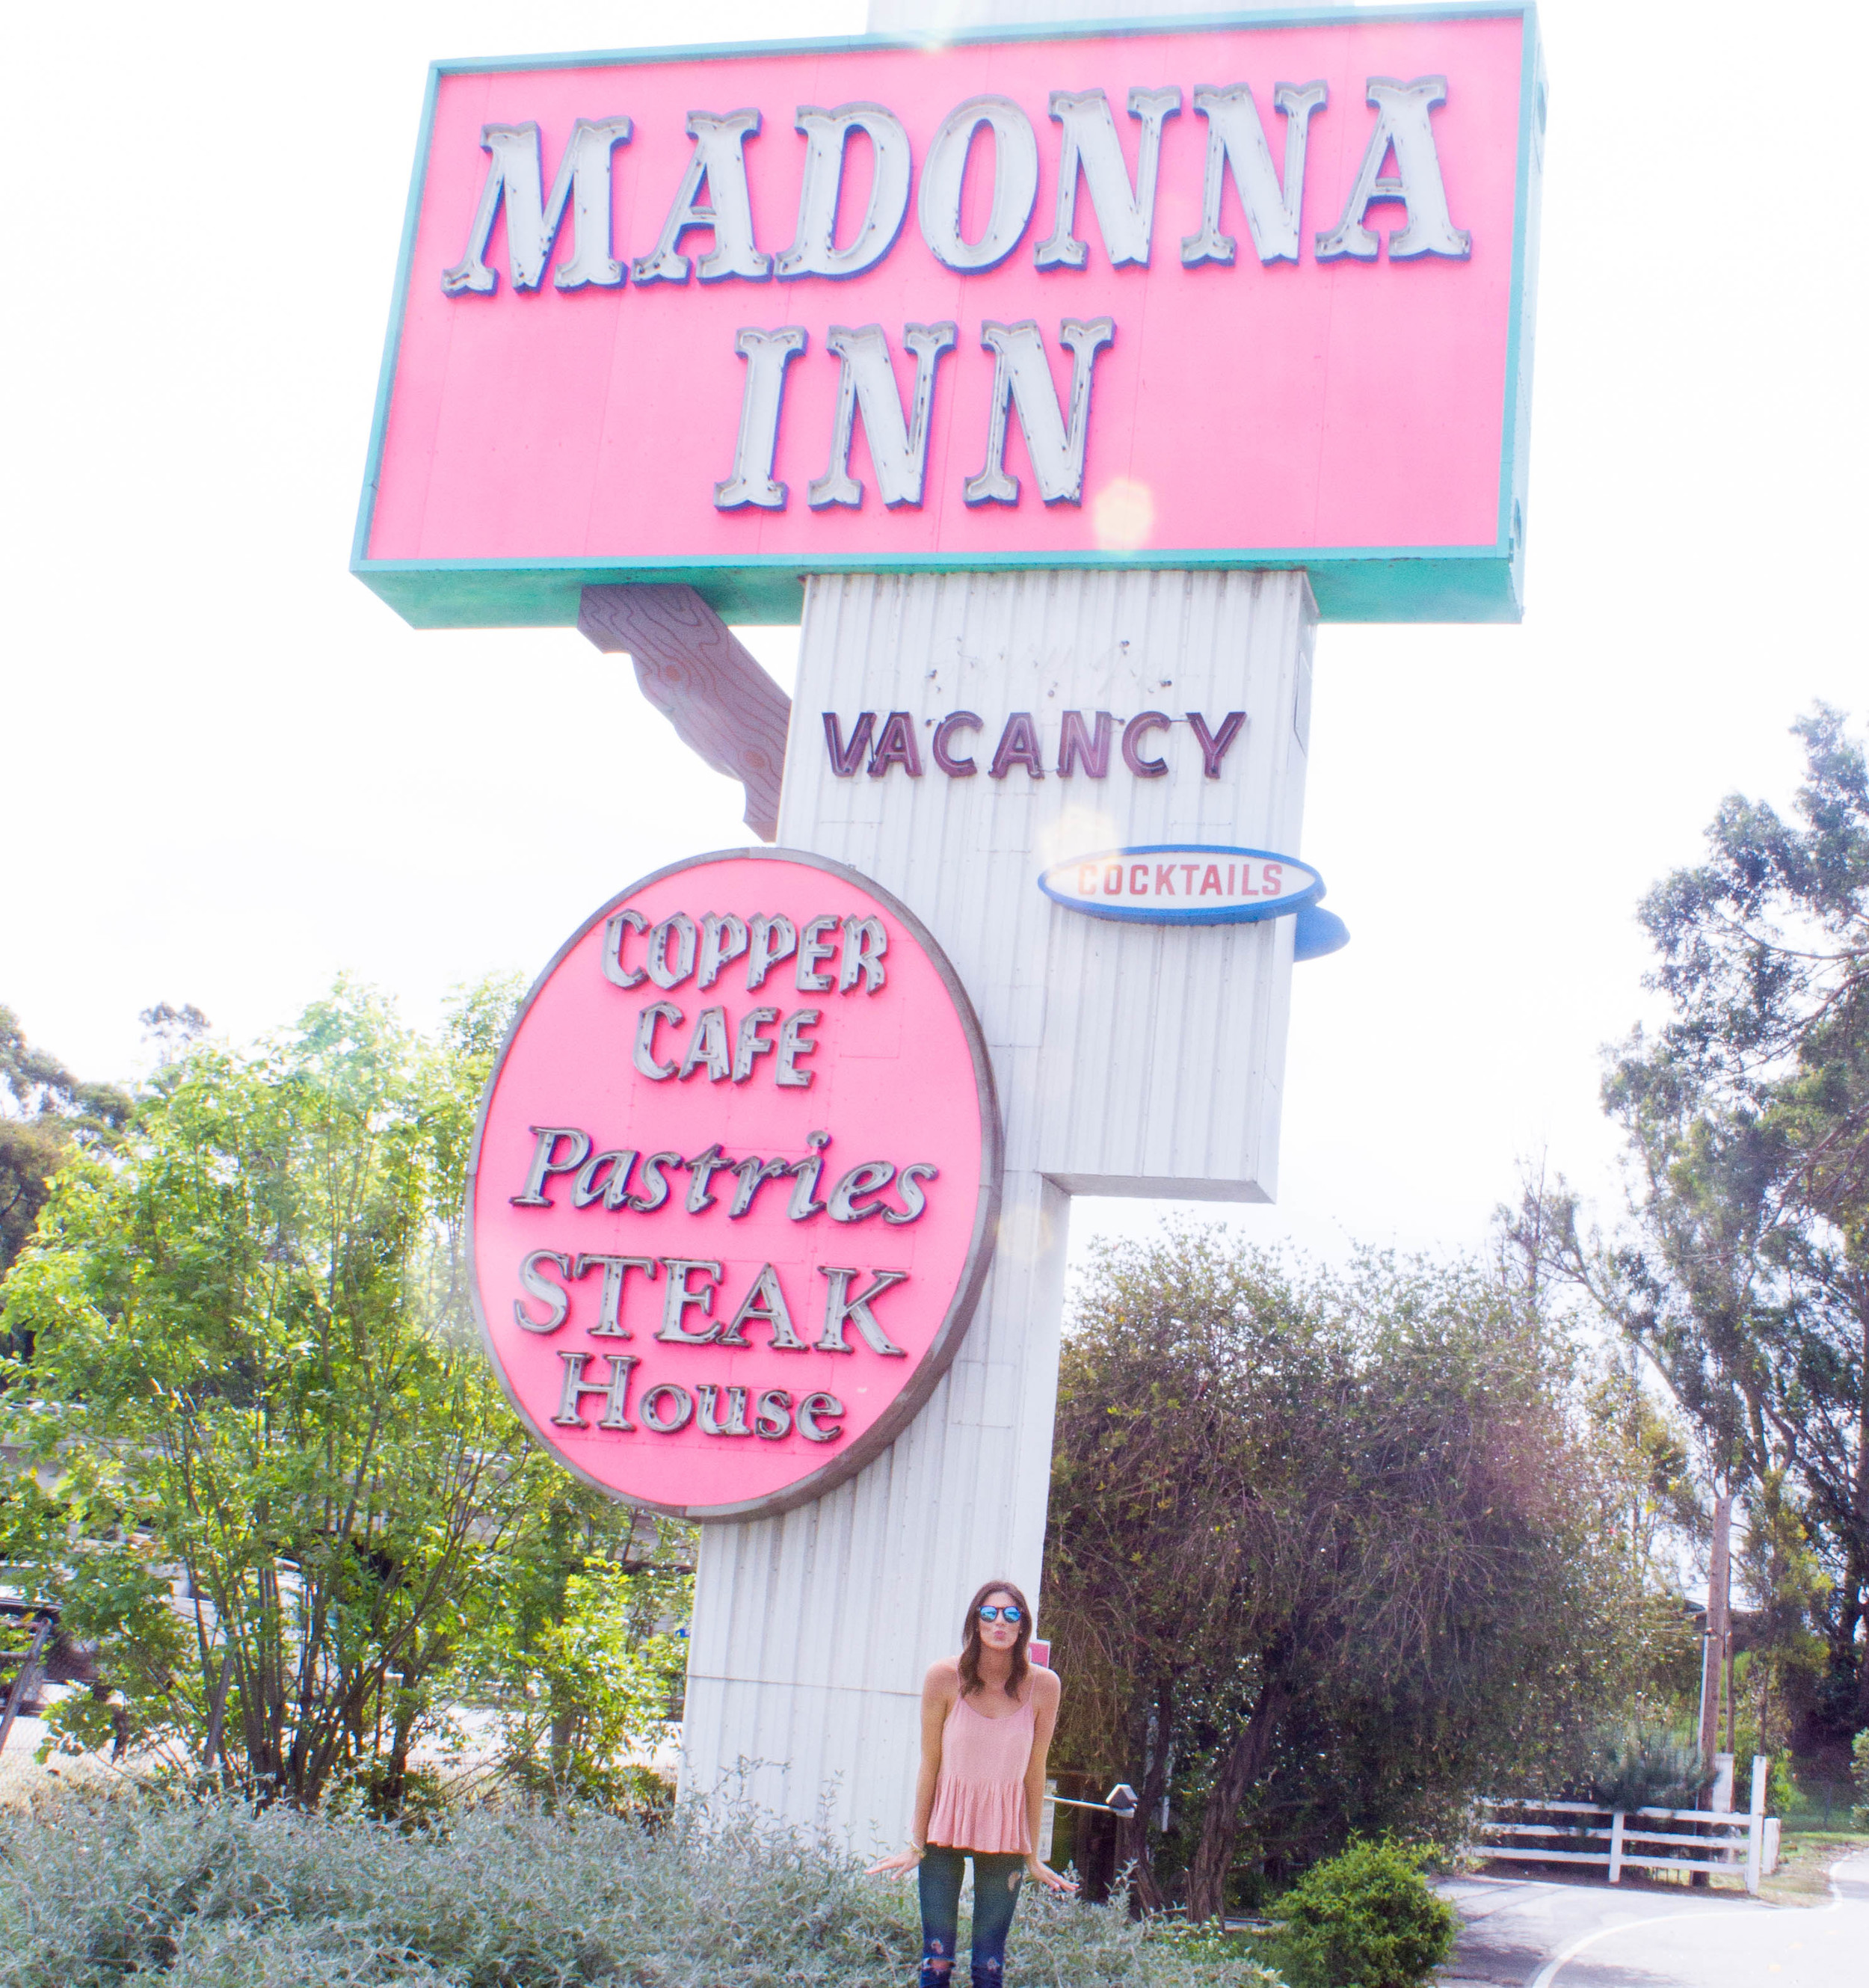 The Madonna Inn hotel review | www.thefourthreads.com